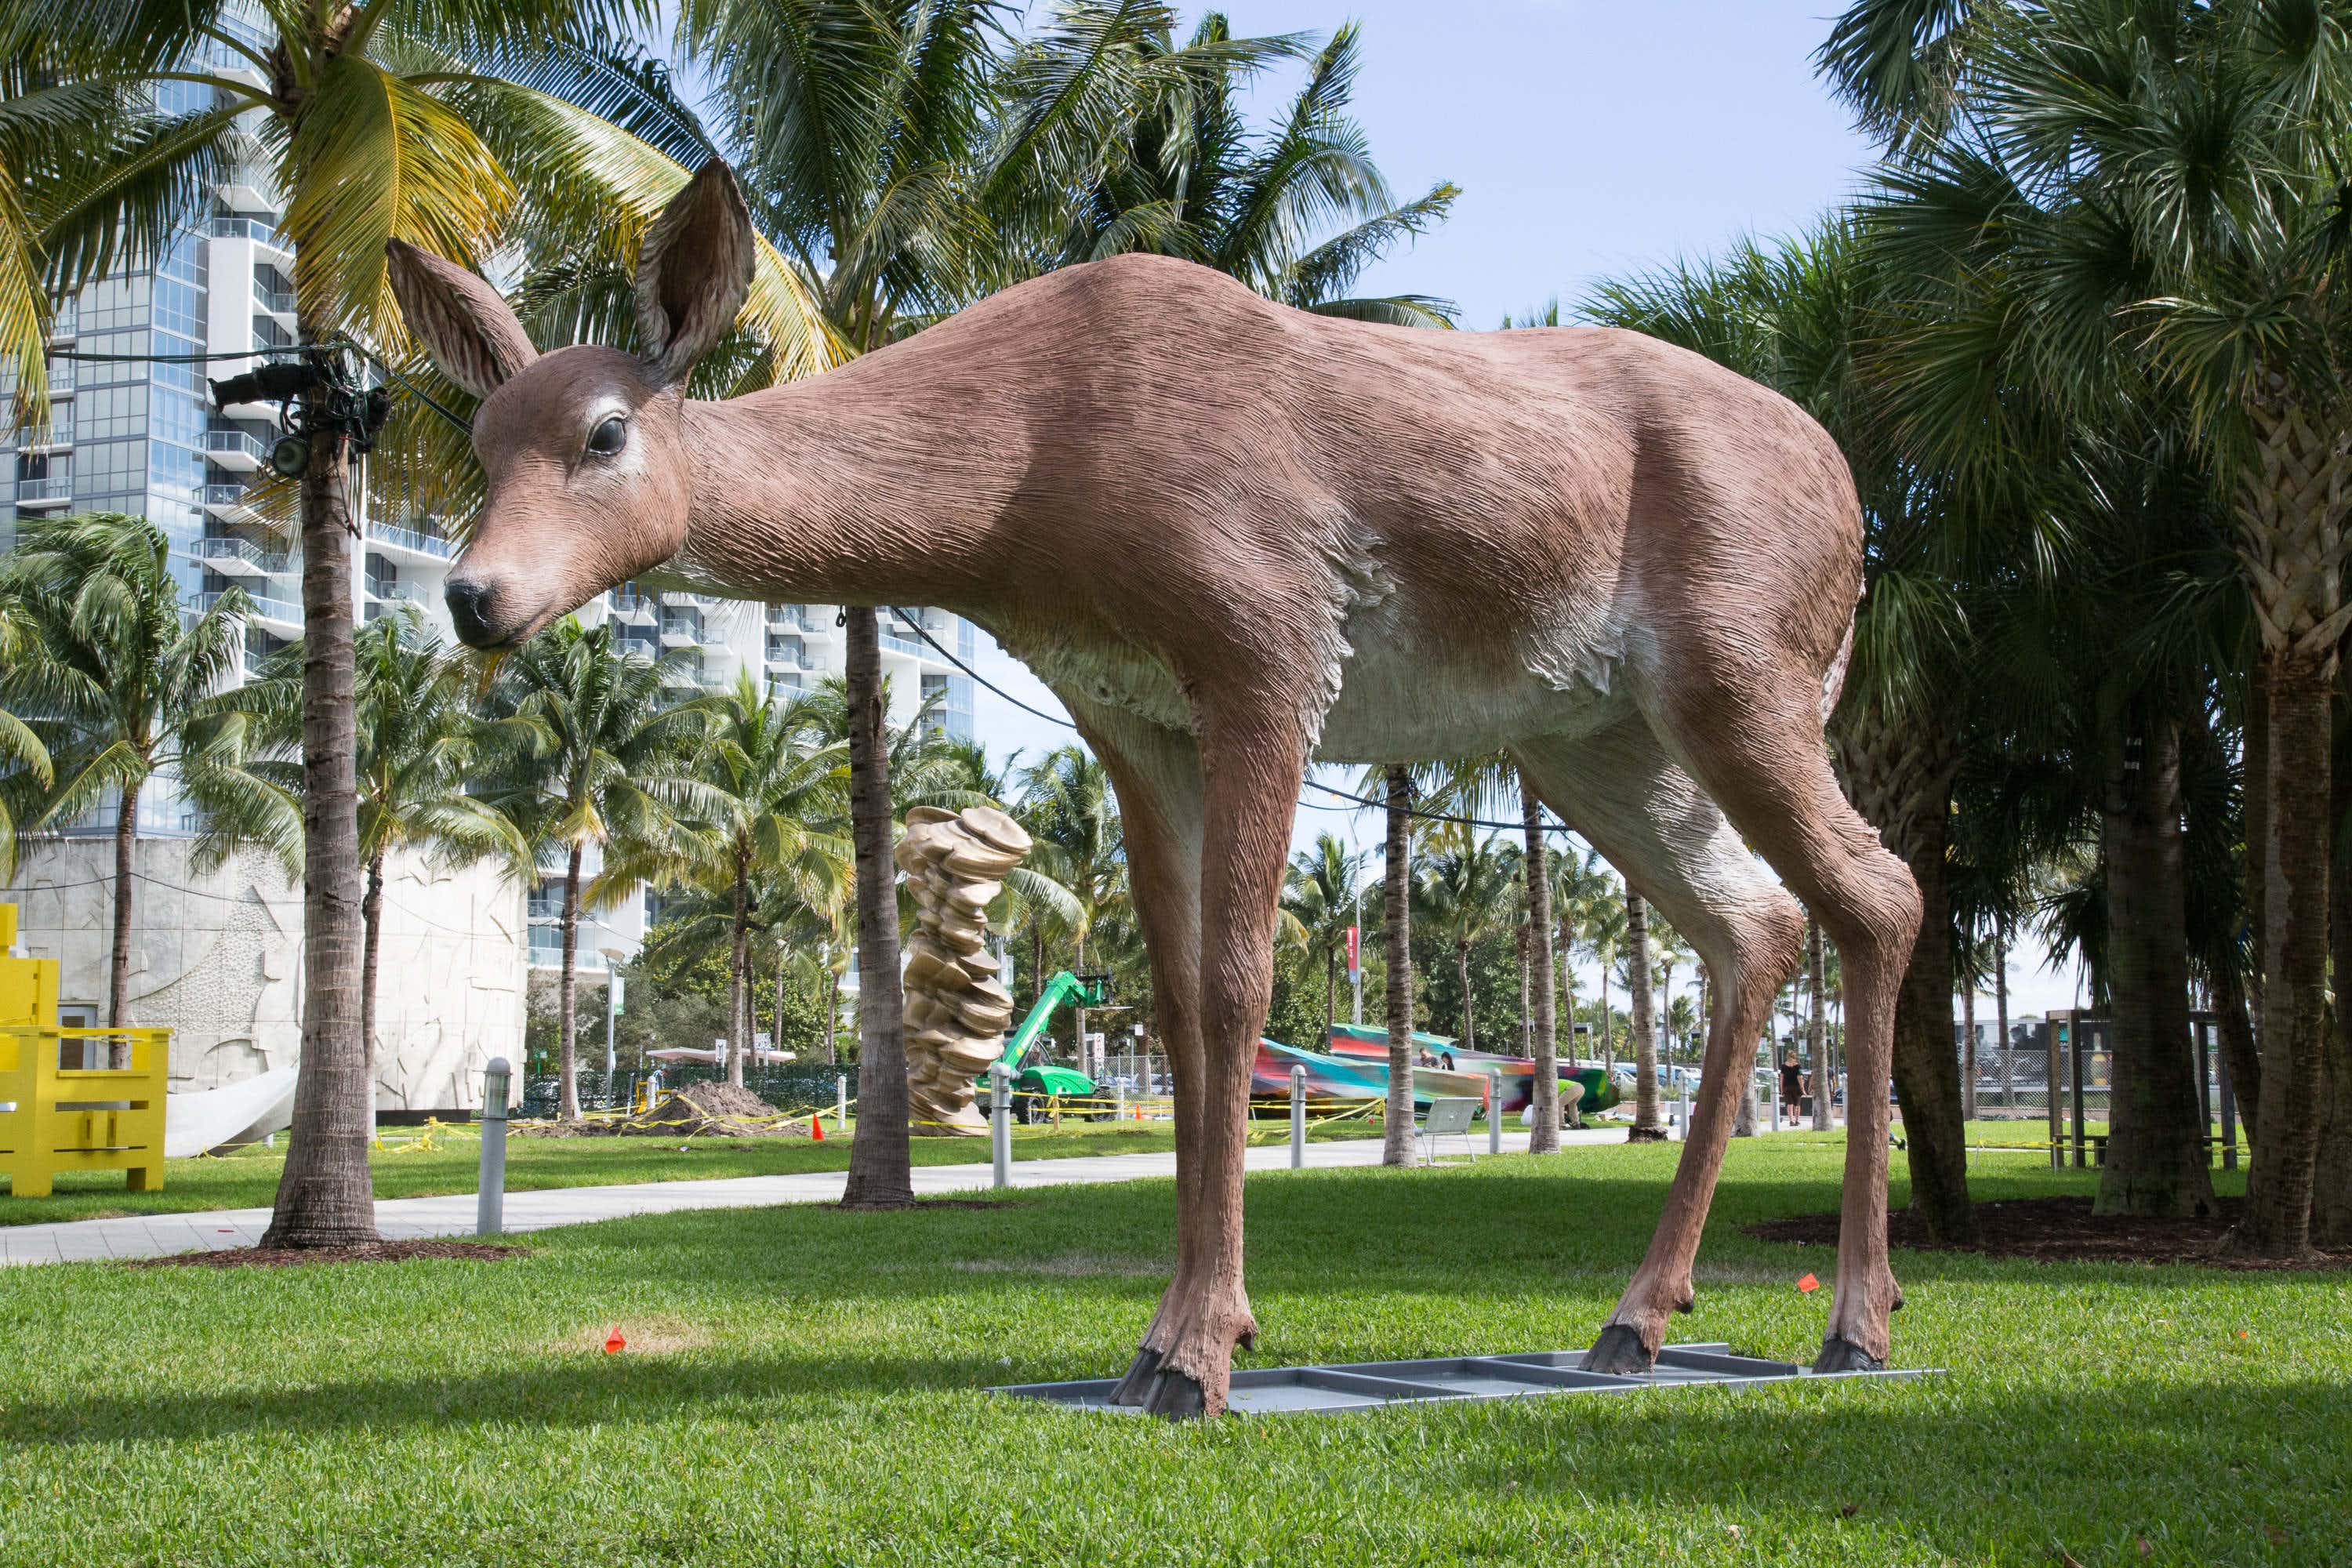 A giant deer and a 'Real Fake' sculpture are among the new public artworks on Chicago's Riverwalk